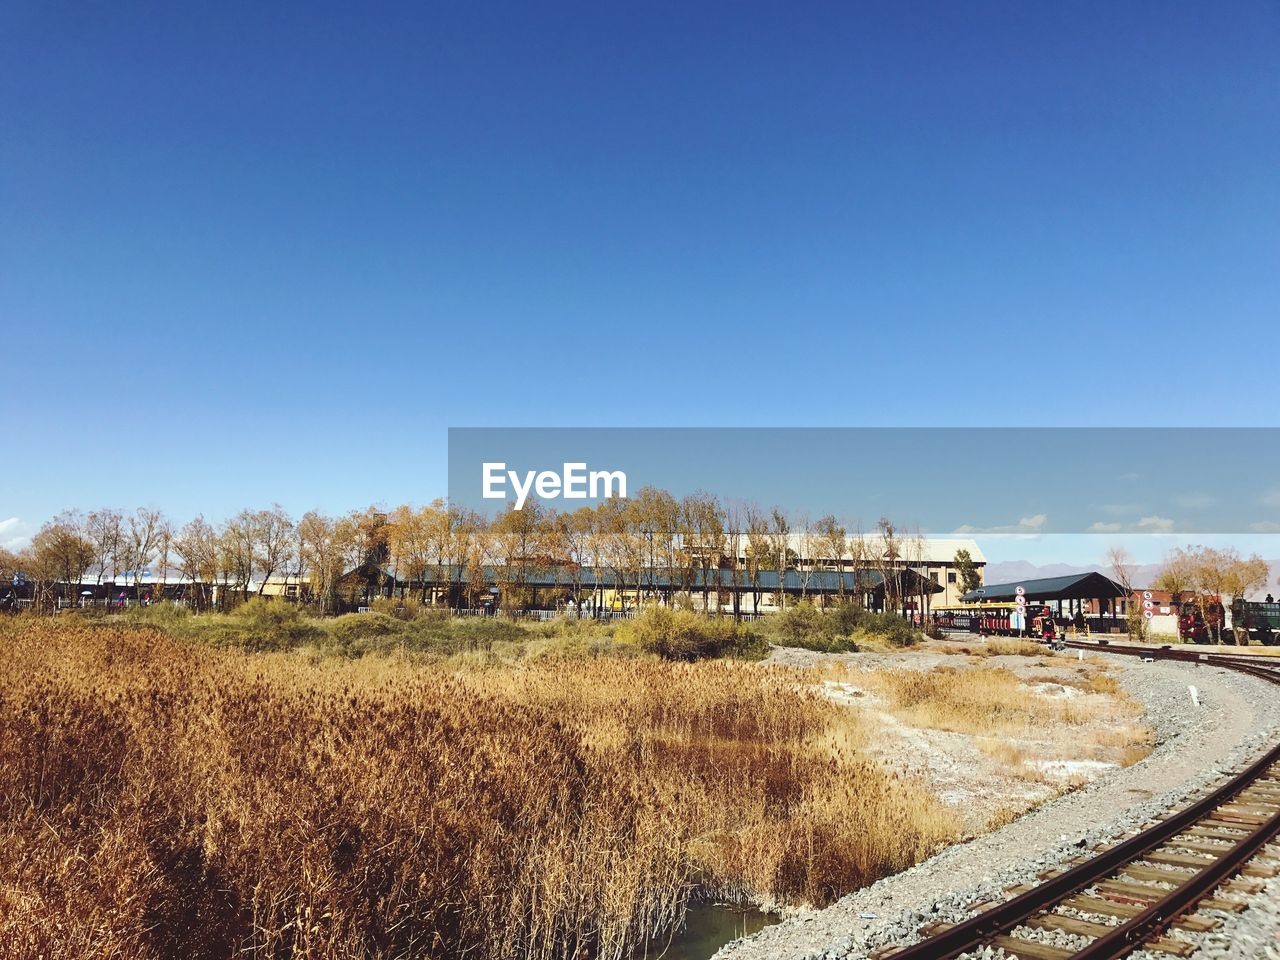 VIEW OF RAILROAD TRACK AGAINST CLEAR BLUE SKY